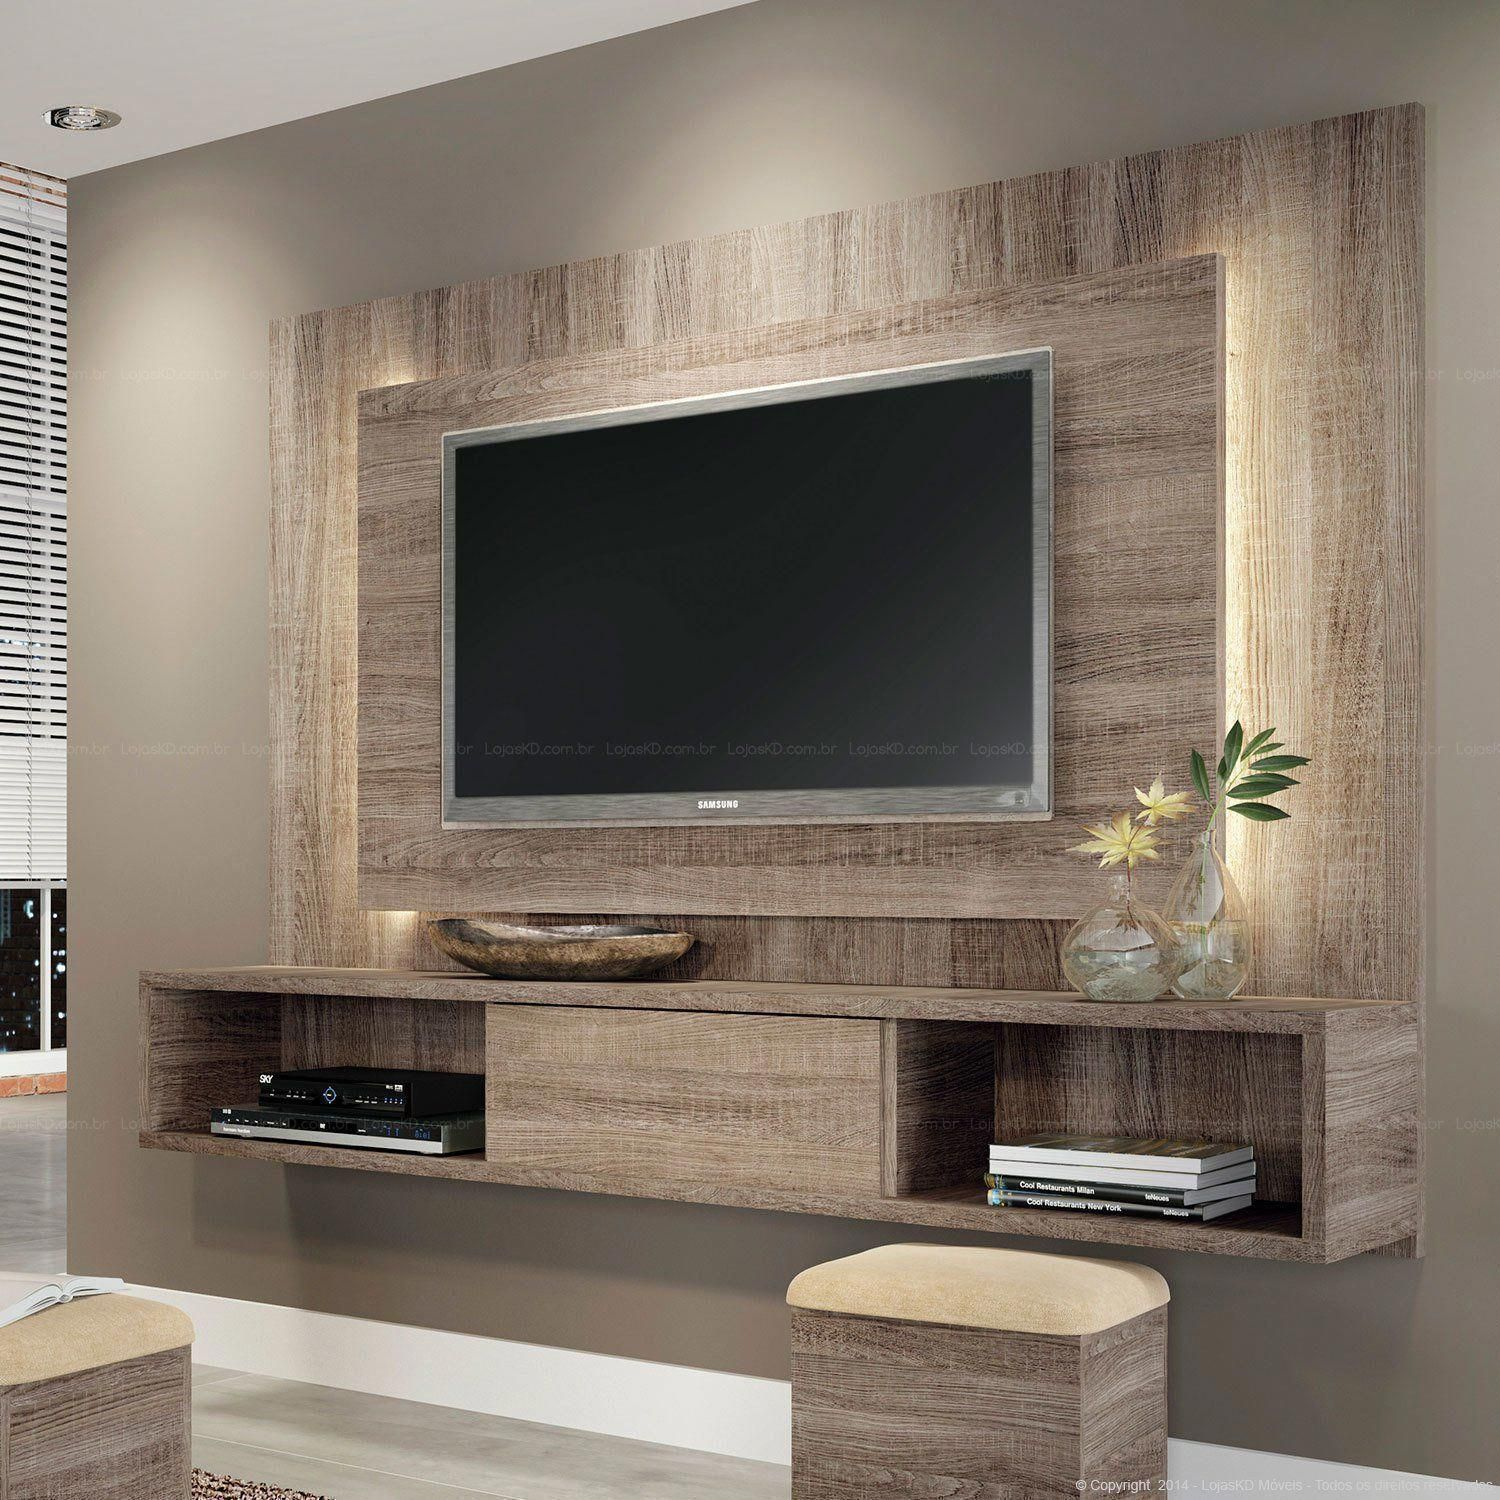 Tv Wall Mount Ideas For Living Room Awesome Place Of Television Nihe And Chic Designs Modern Decorating Ide Living Room Tv Wall Tv Wall Design Tv Wall Decor